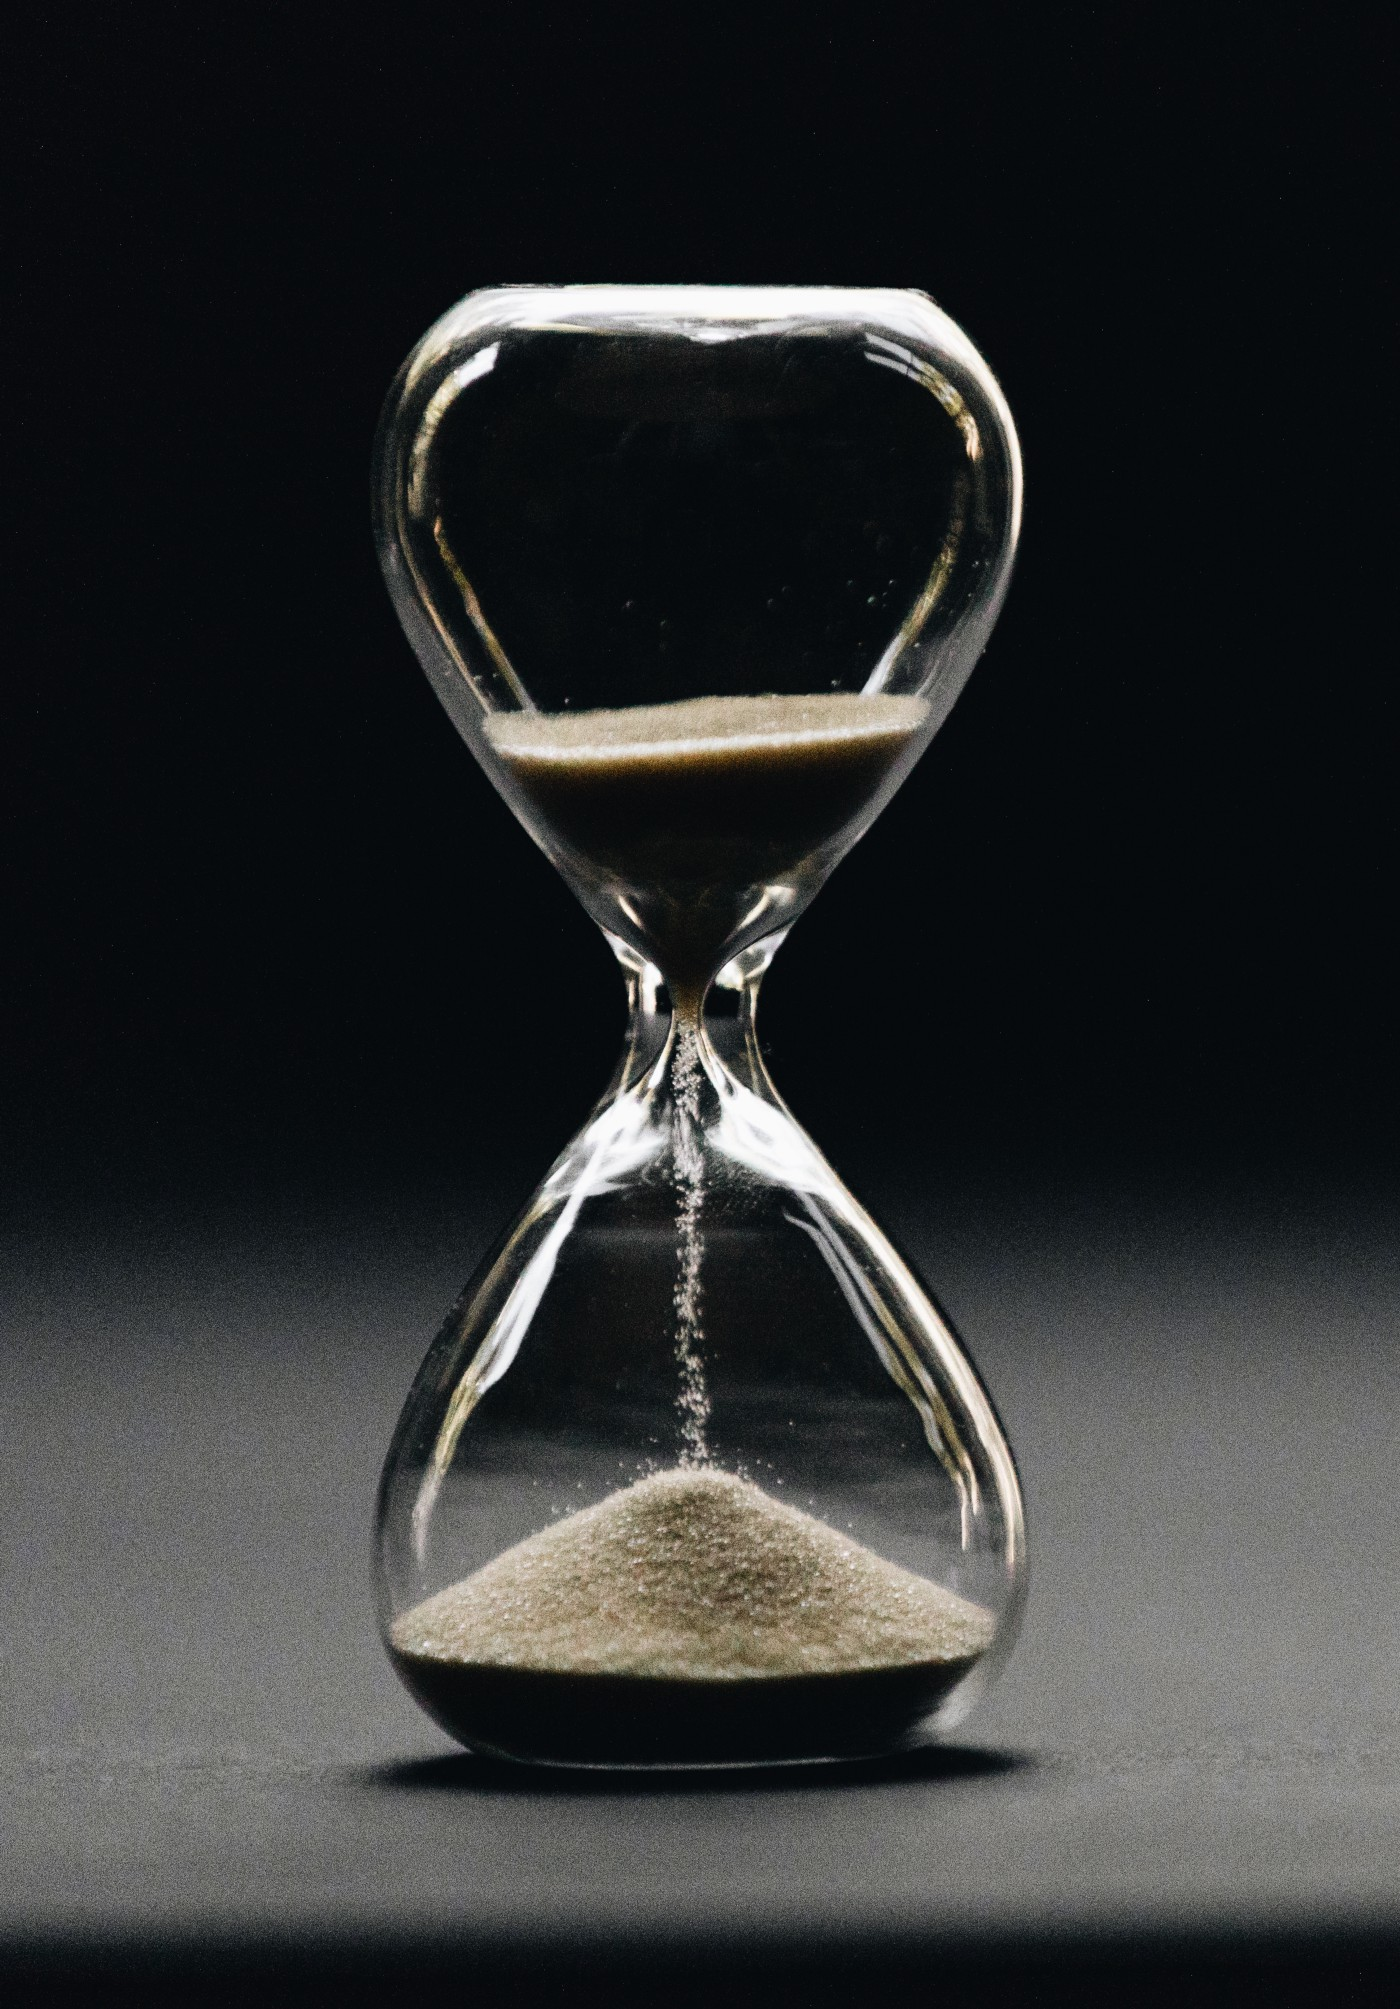 An hour-glass in motion for time management